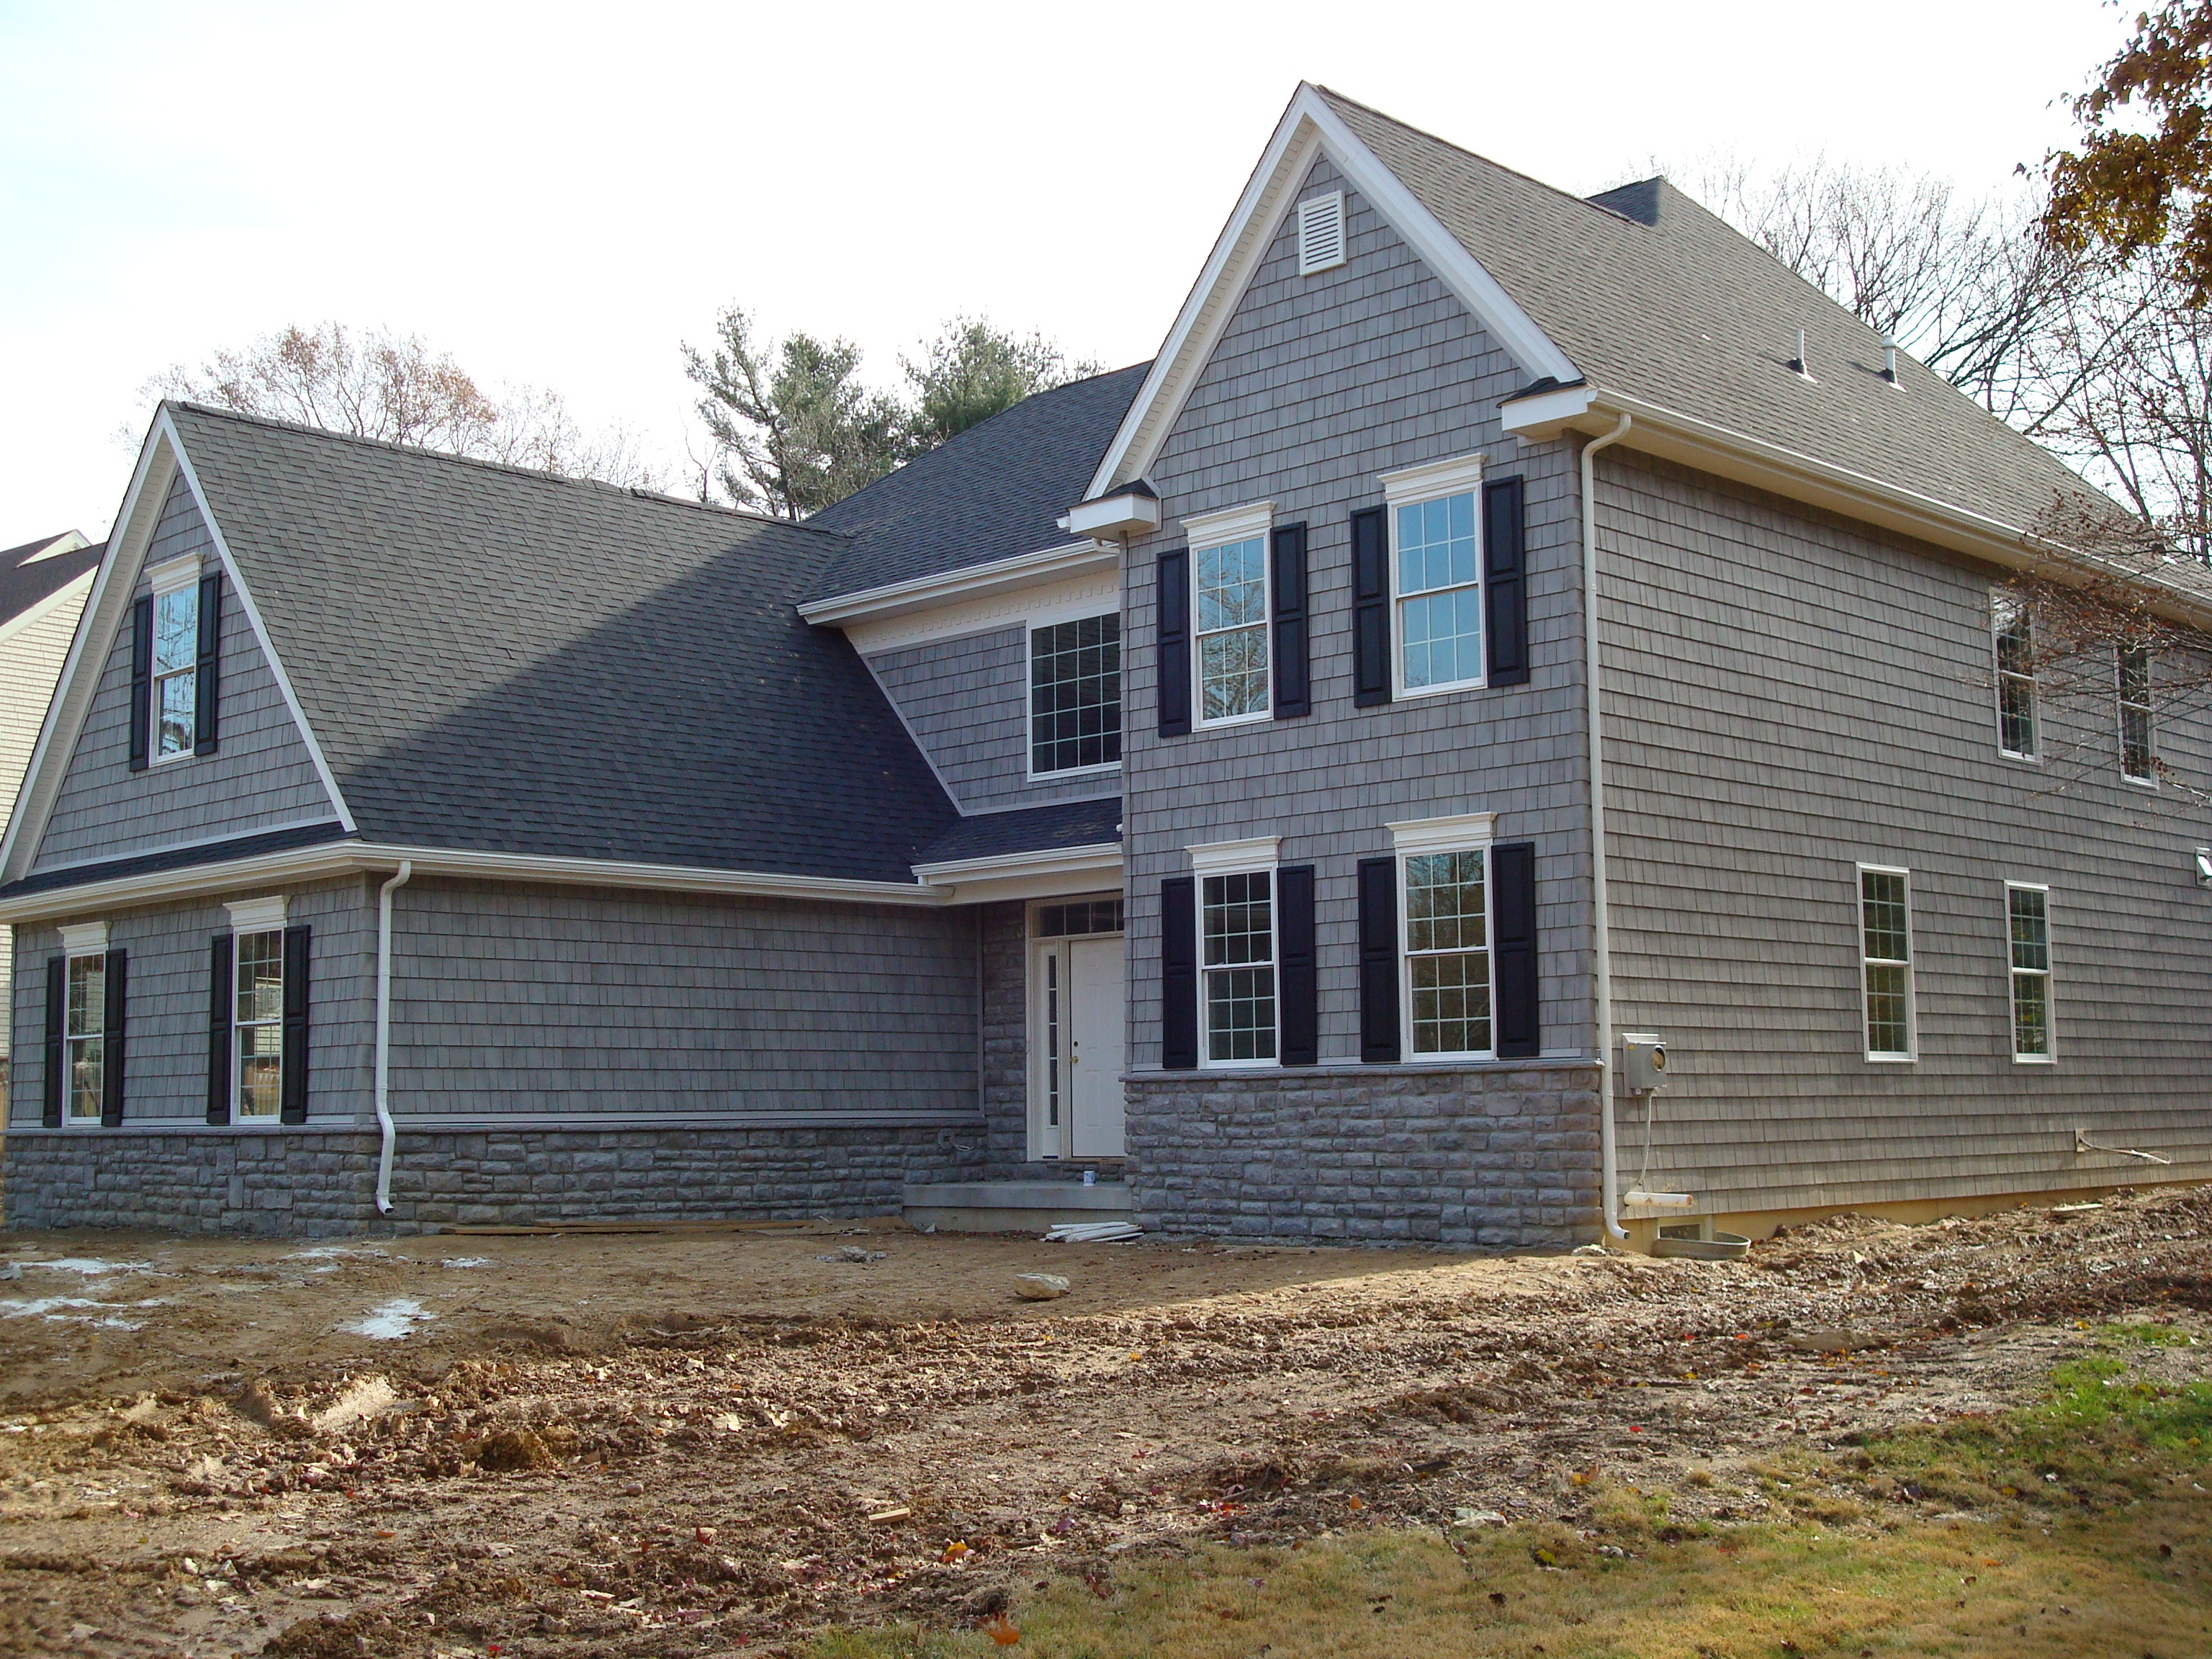 Home Exterior Siding top 7 new home exterior types north carolina new home exteriors House Exterior Renovation